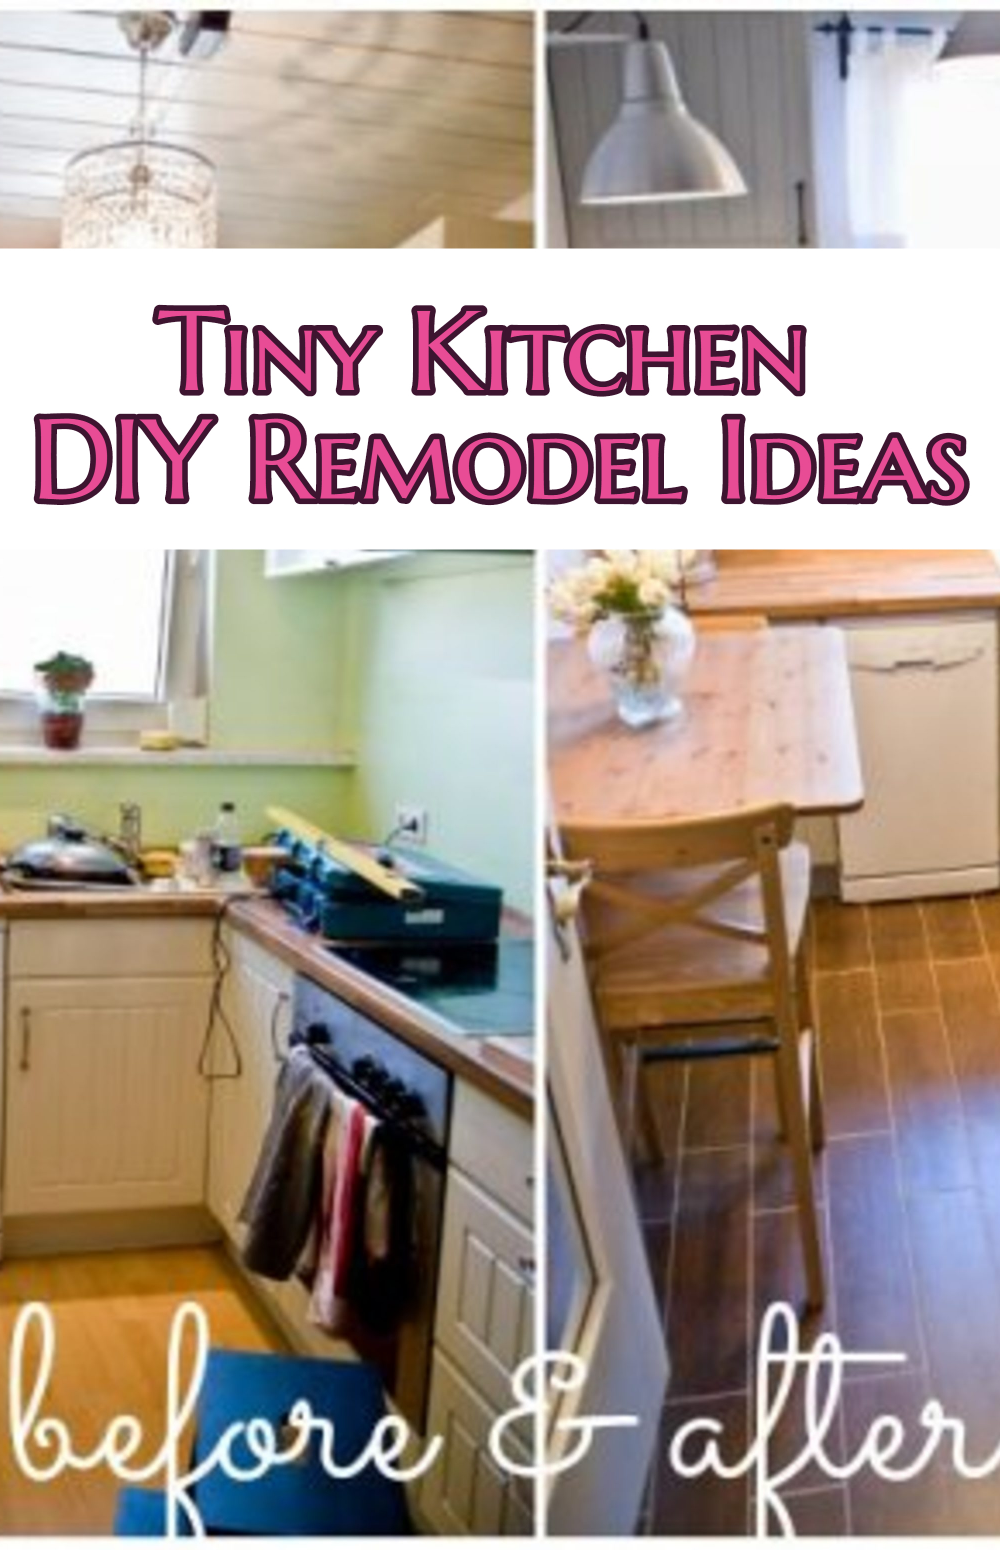 Small Kitchen DIY Ideas – Before & After Remodel Pictures of Tiny Kitchens